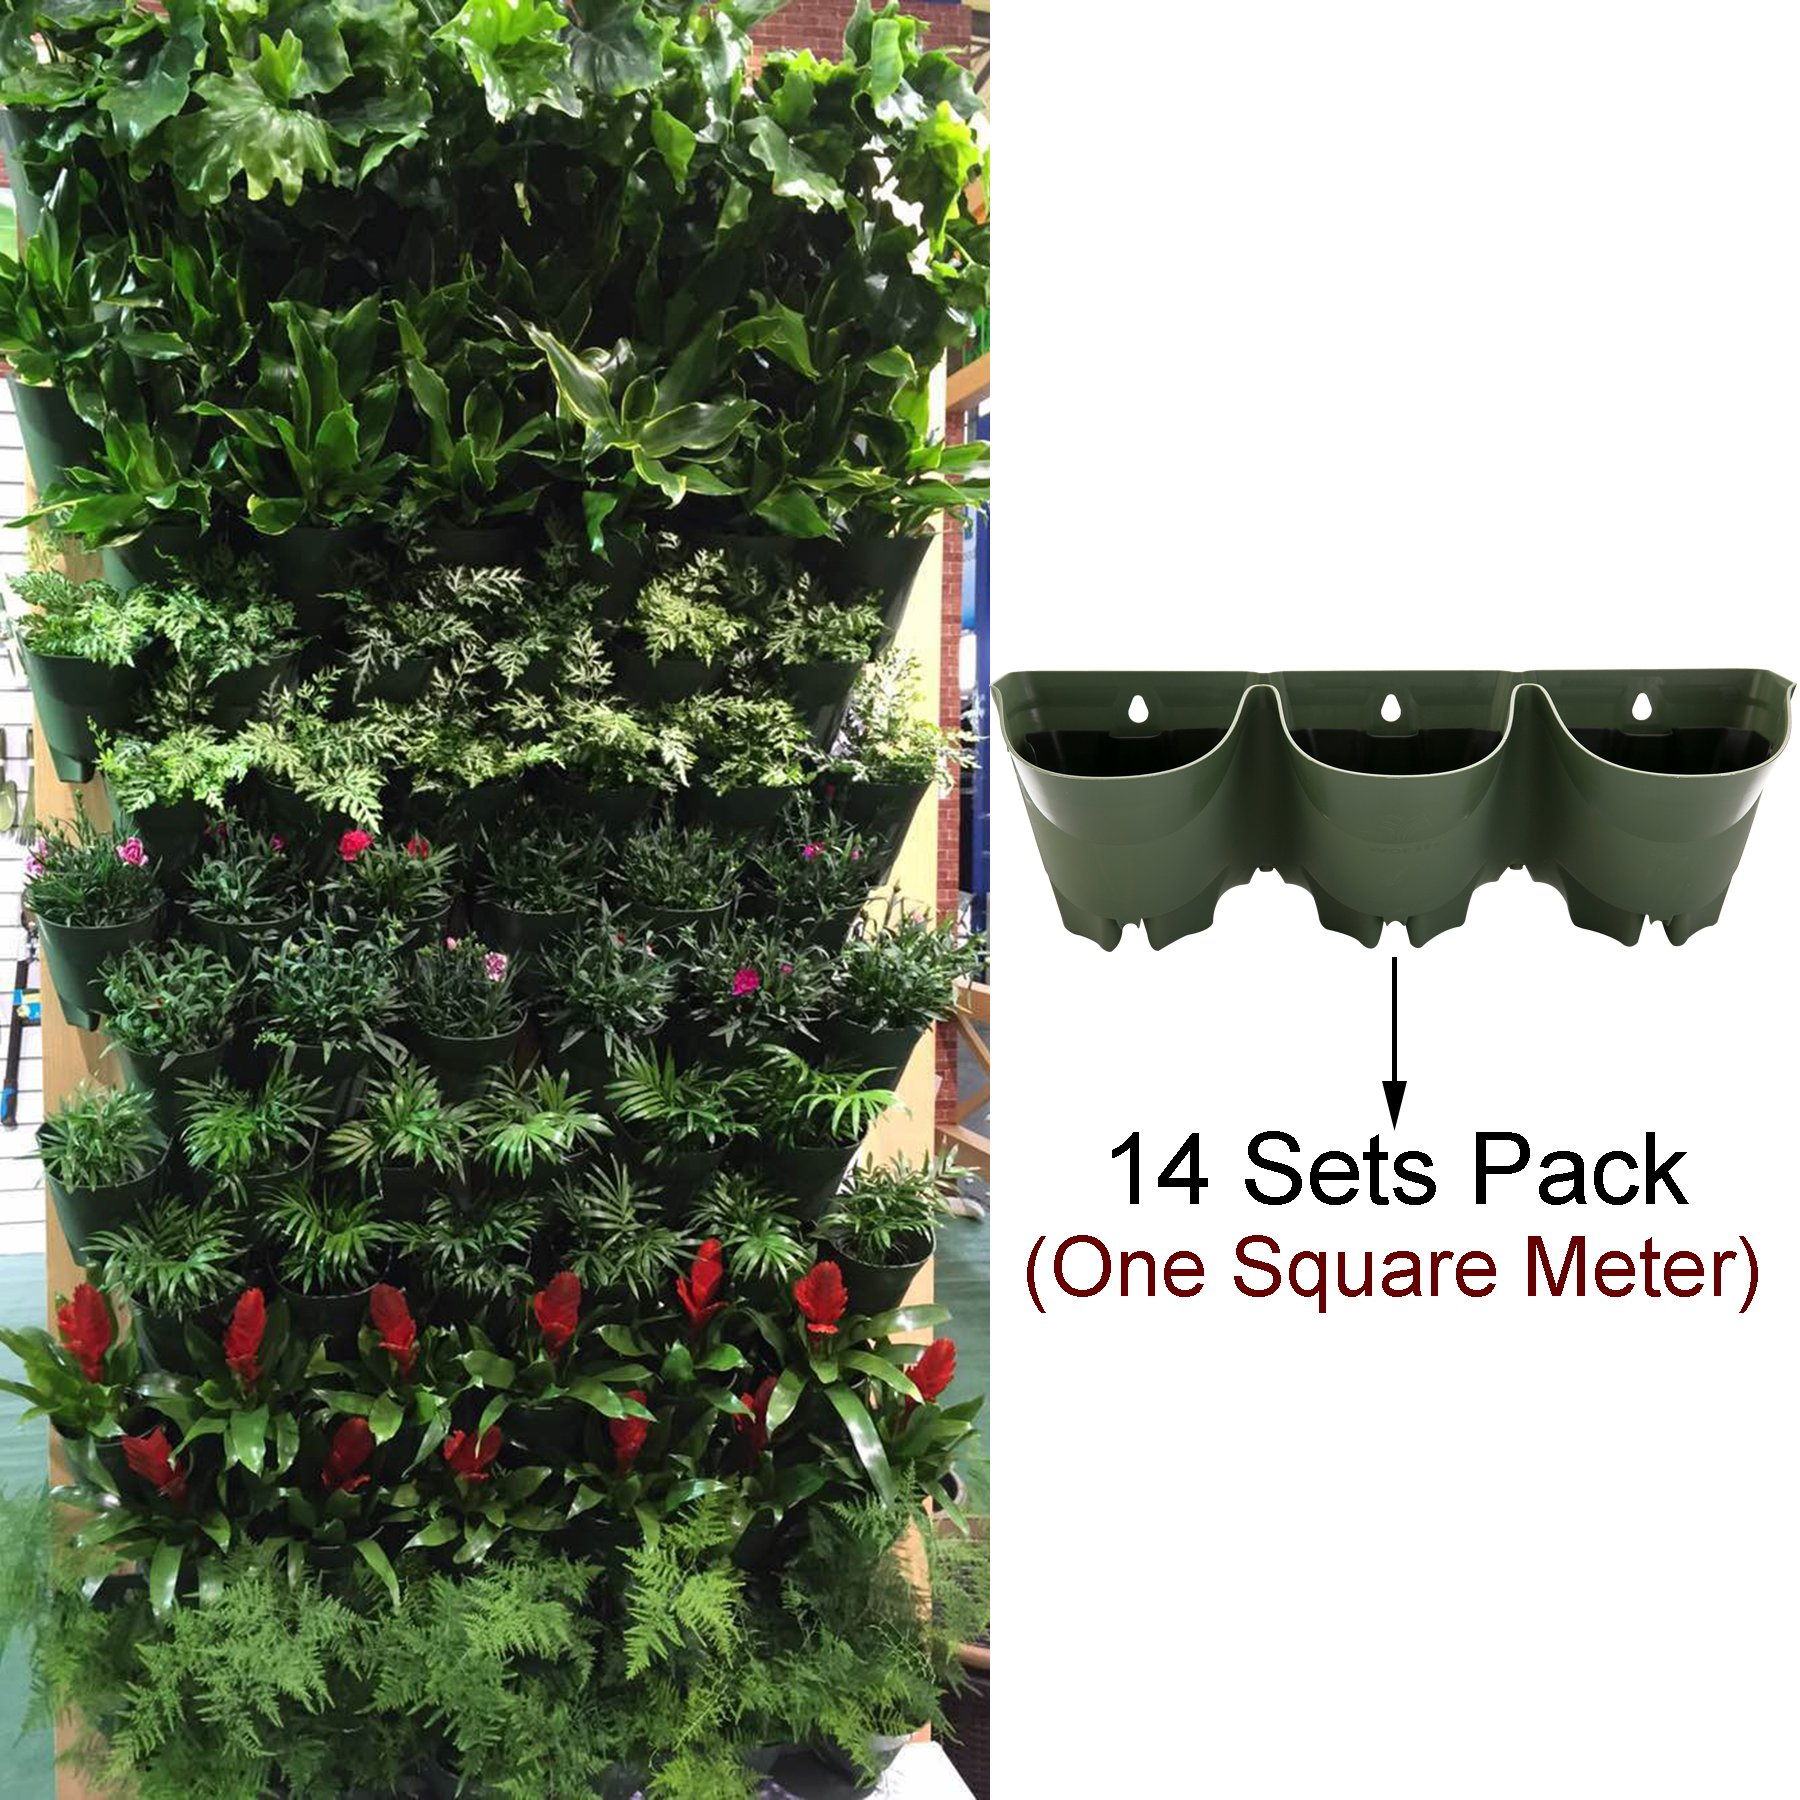 Sungmor 1 Square Meter Erea Vertical Hanging Living Wall Planter,Worth Gardening 3 Pocket with 3 Liner Self Watering Flower Pot,Indoor and Outdoor Decoration(14 Sets Pack) by Sungmor